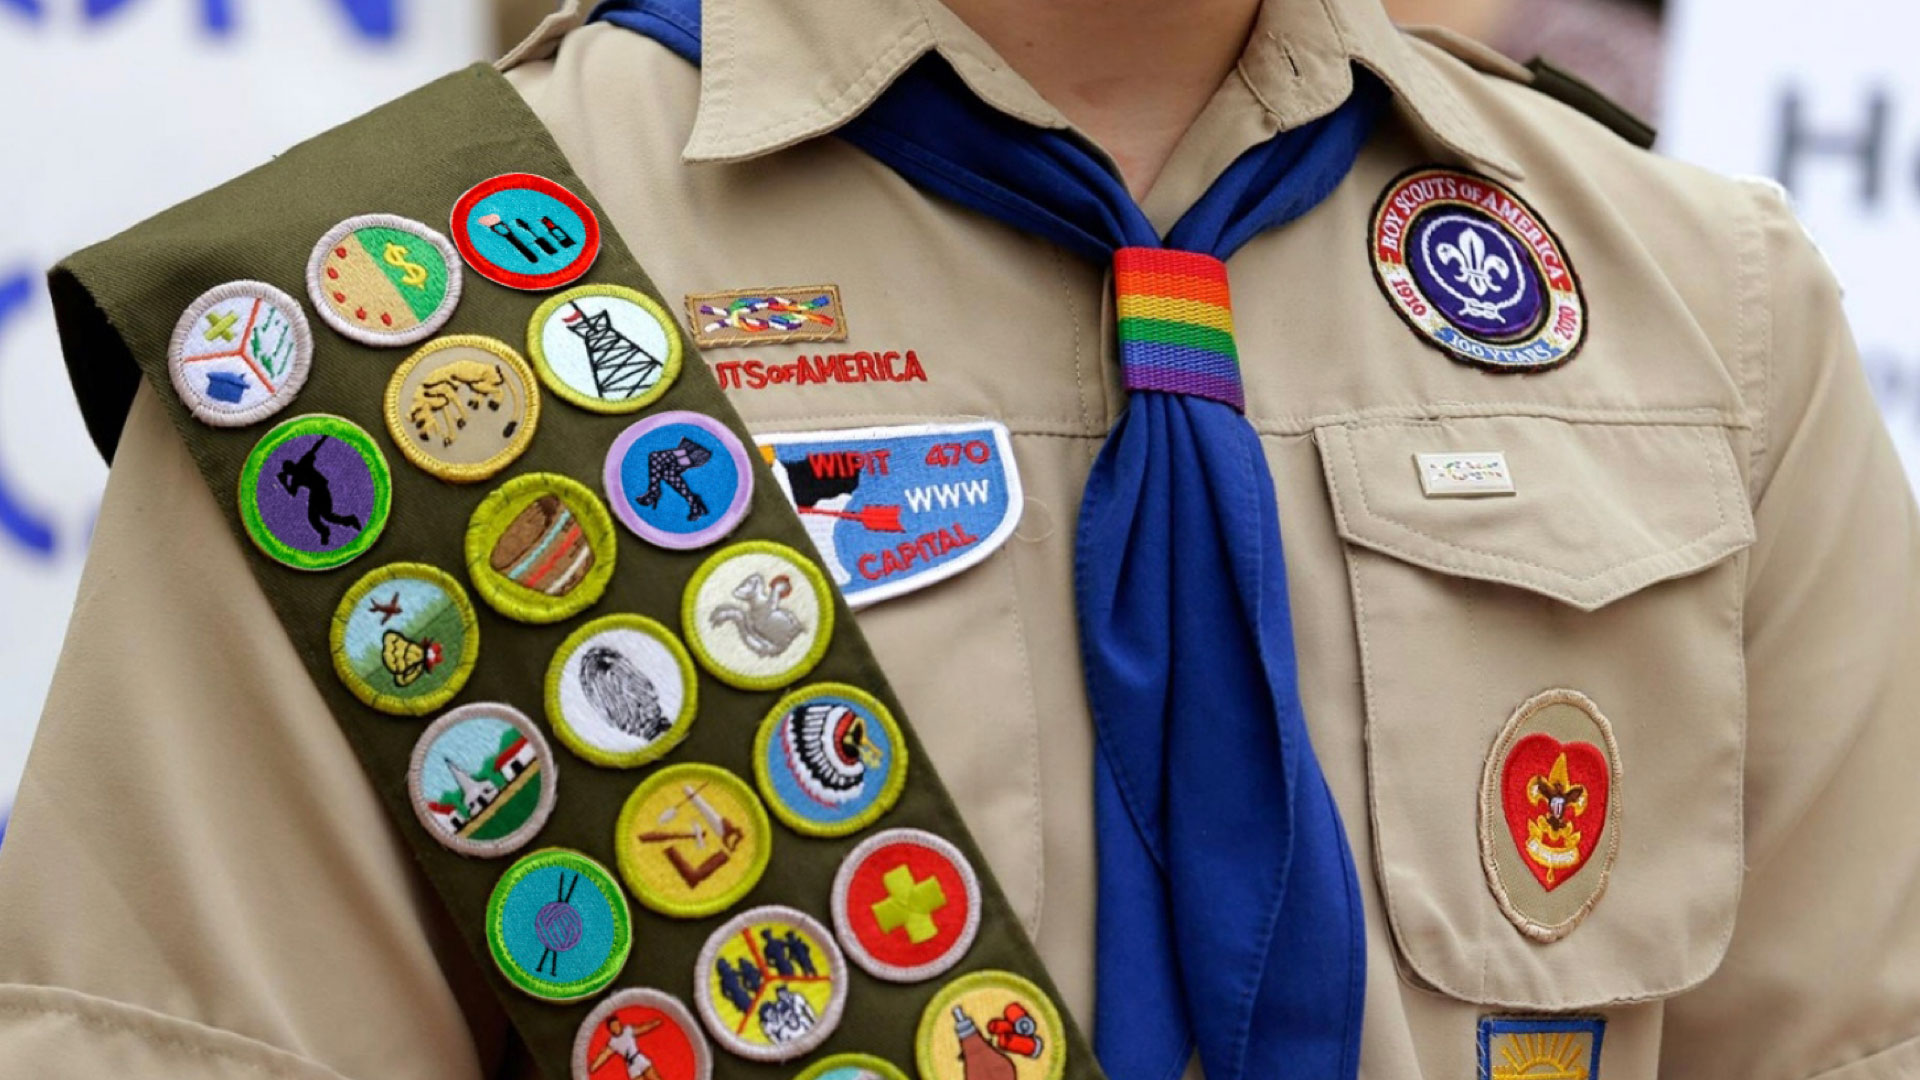 Schlesinger_Thesis-Blog-Post_Boy-Scouts_Full-Image-Rendering.jpg